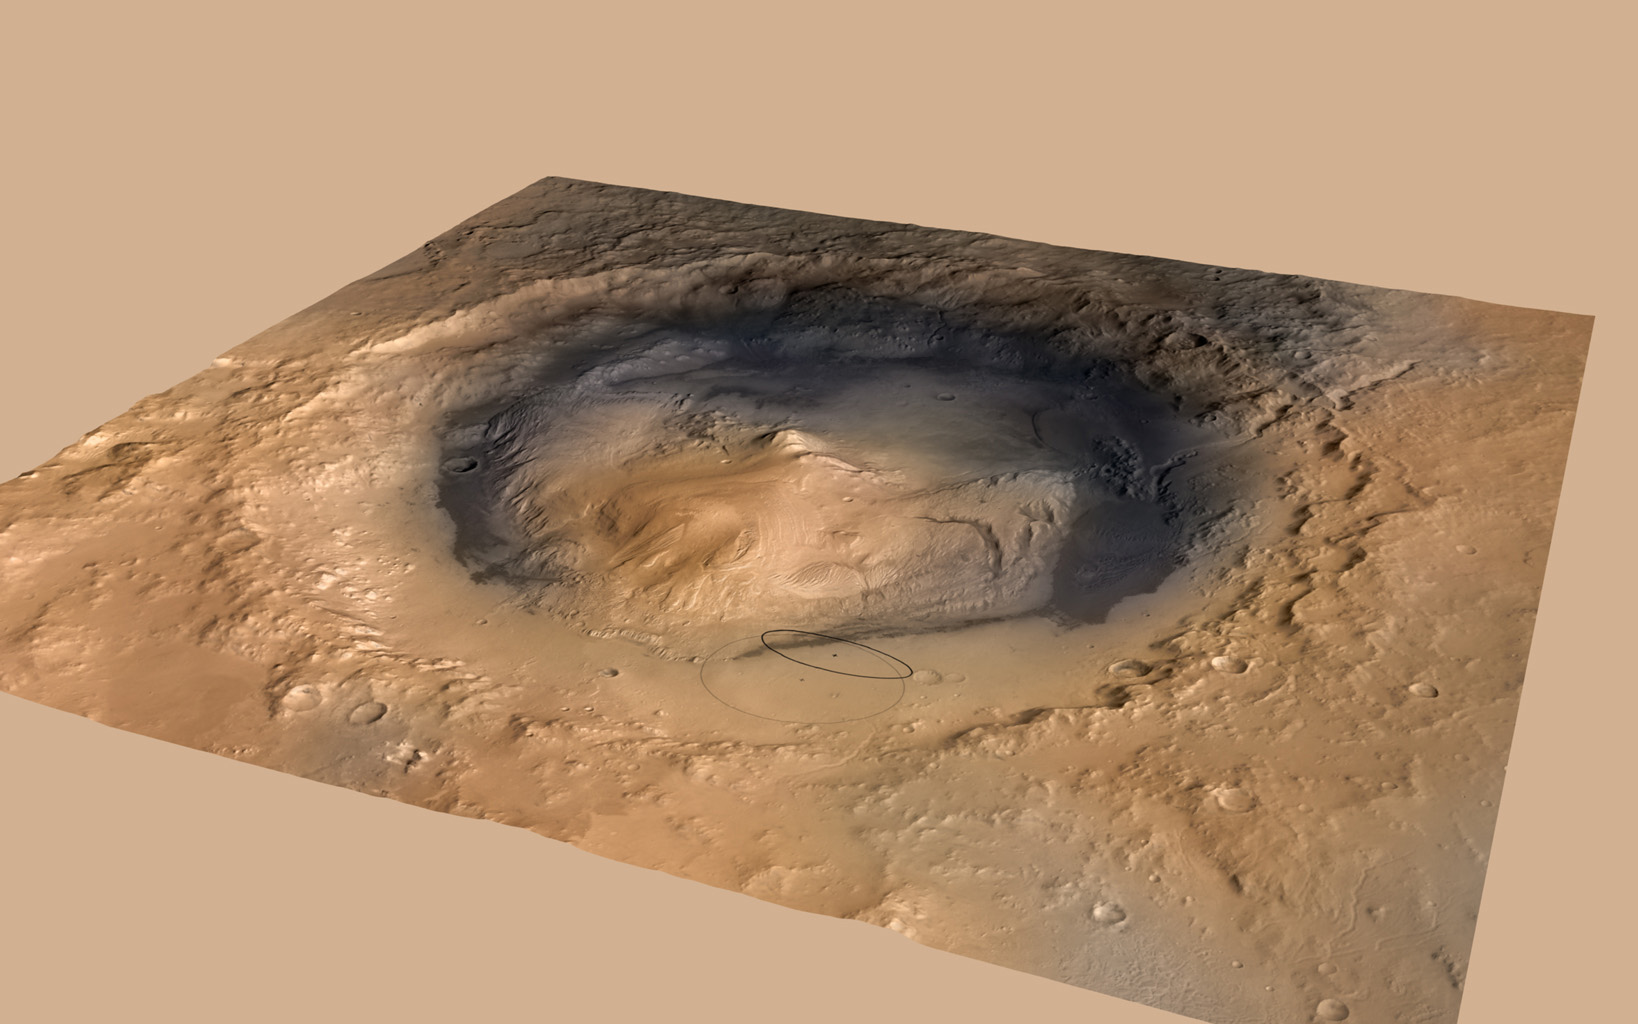 The landing target area for Curiosity, the big rover of NASA's Mars Science Laboratory mission, has been revised, reducing the area's size. It also puts the center of the landing area closer to Mount Sharp.